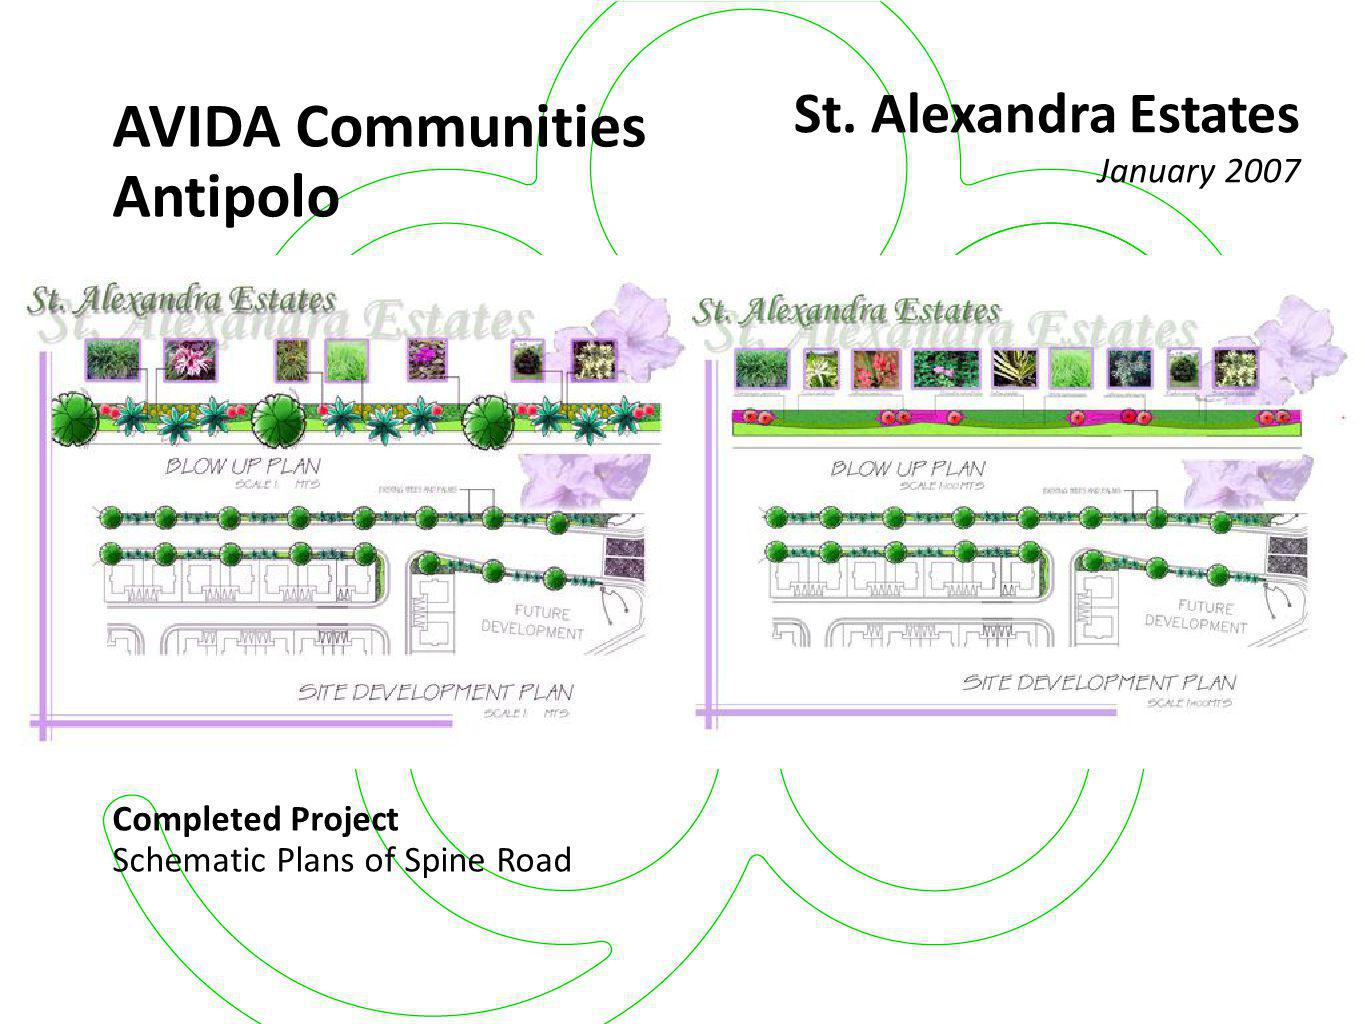 AVIDA Residences Completed Project Schematic Plans of Main Entrance, Model Units & Intersection (Phase 1) San Isidro March 2006